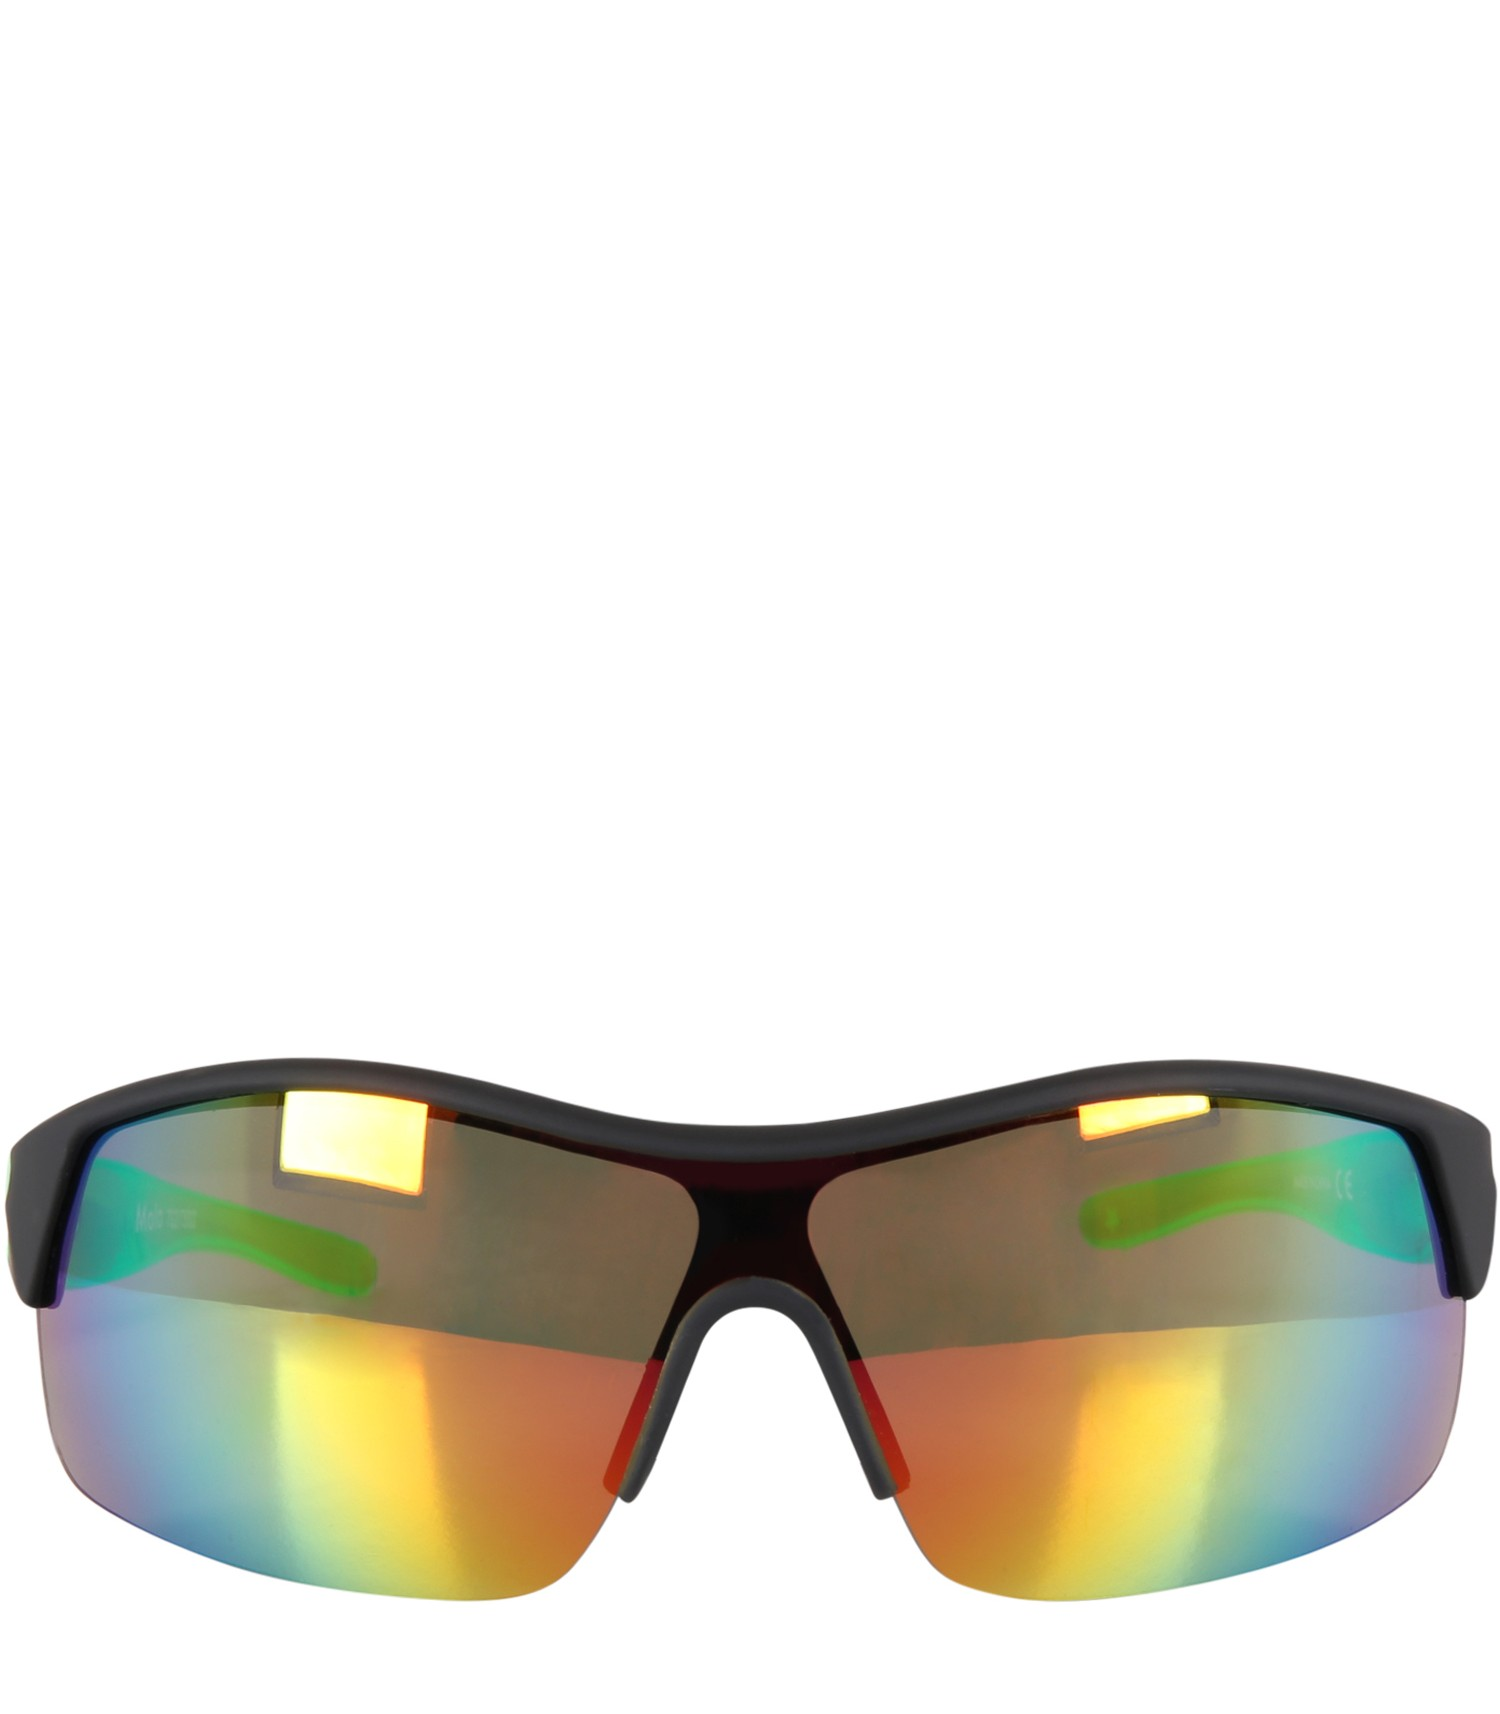 Molo Black ''Surf'' sunglasses for kids